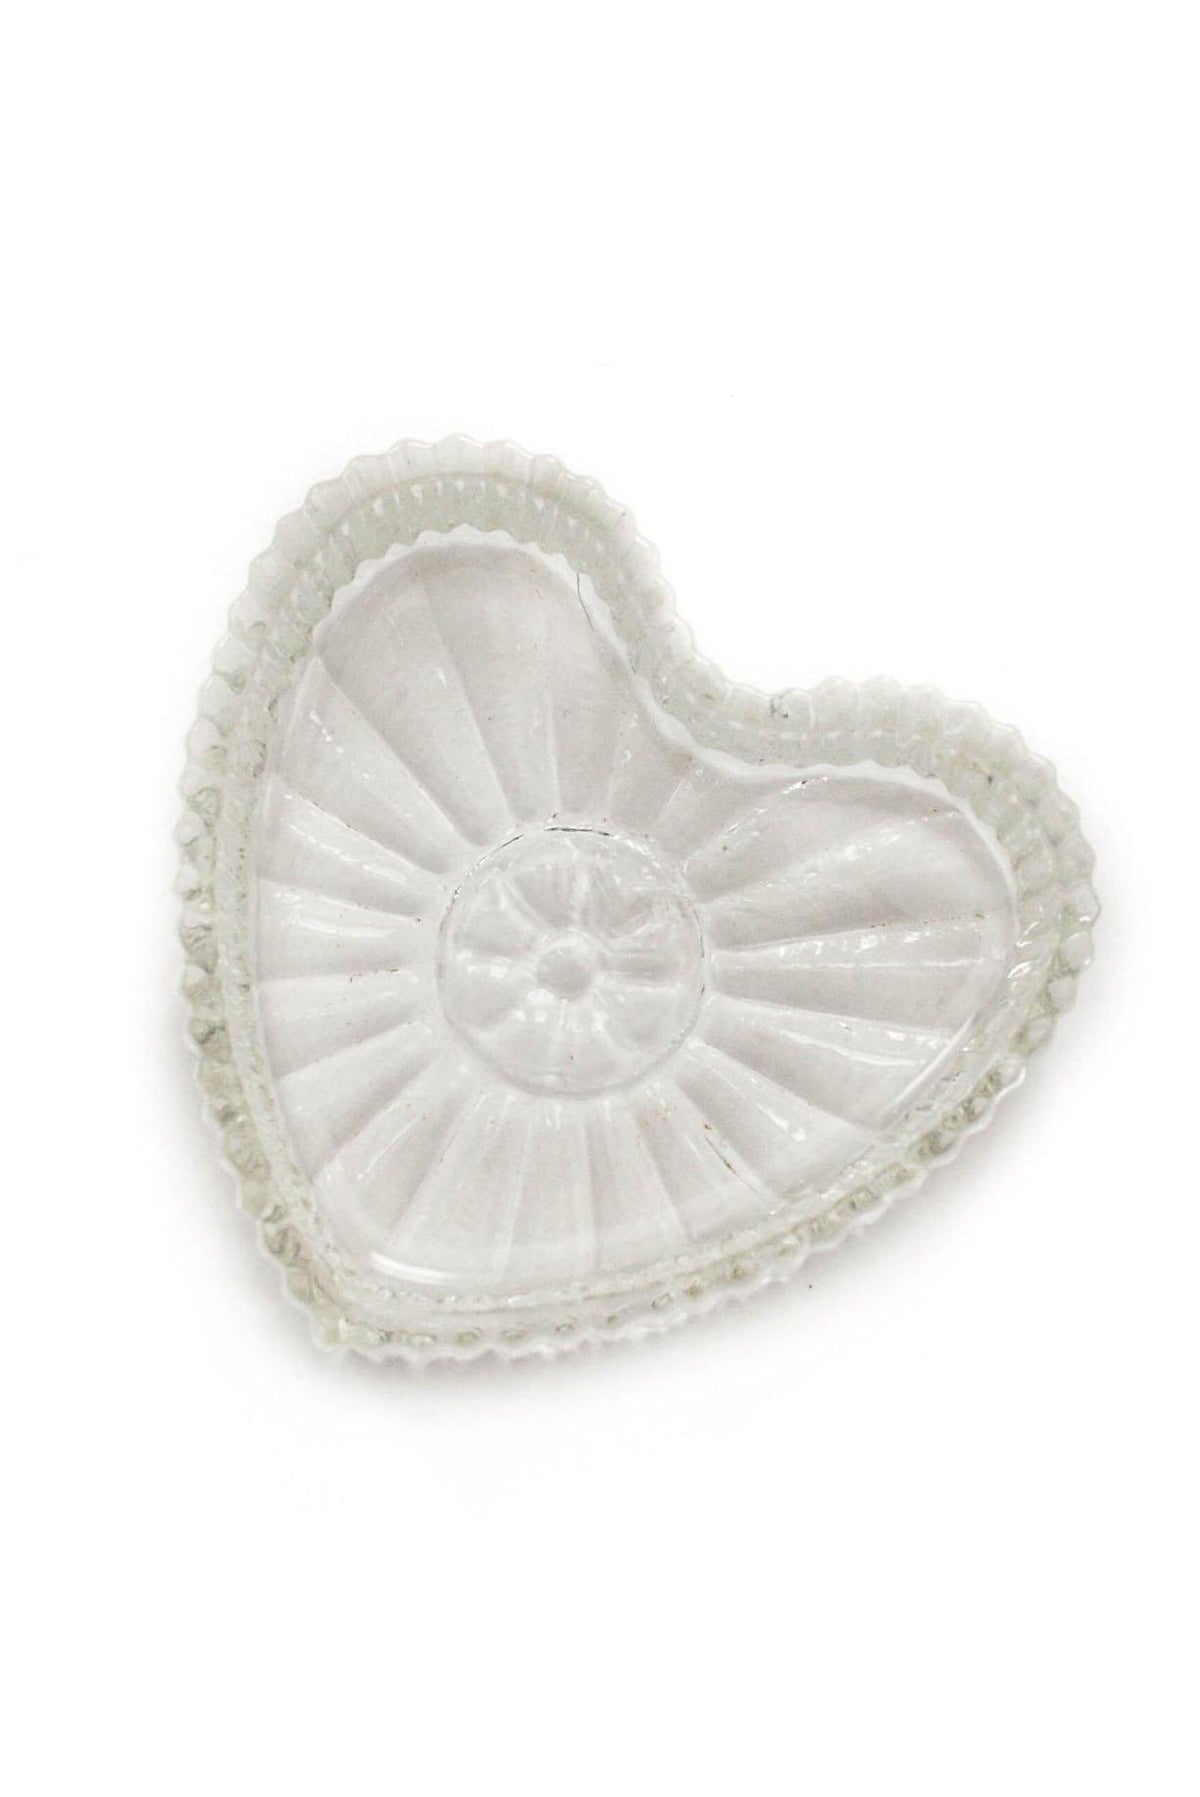 Vintage Mini Glass Heart Tray from Sweet and Spark